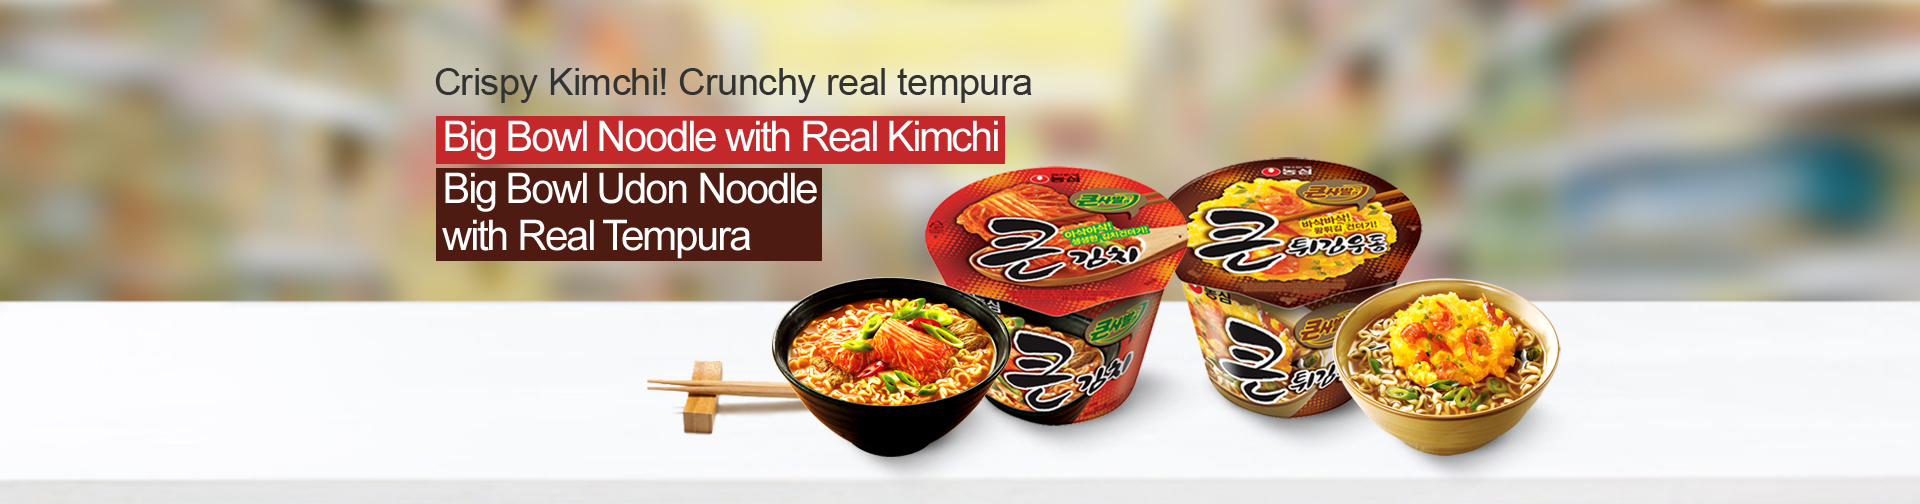 Crispy Kimchi! Crunchy real tempura